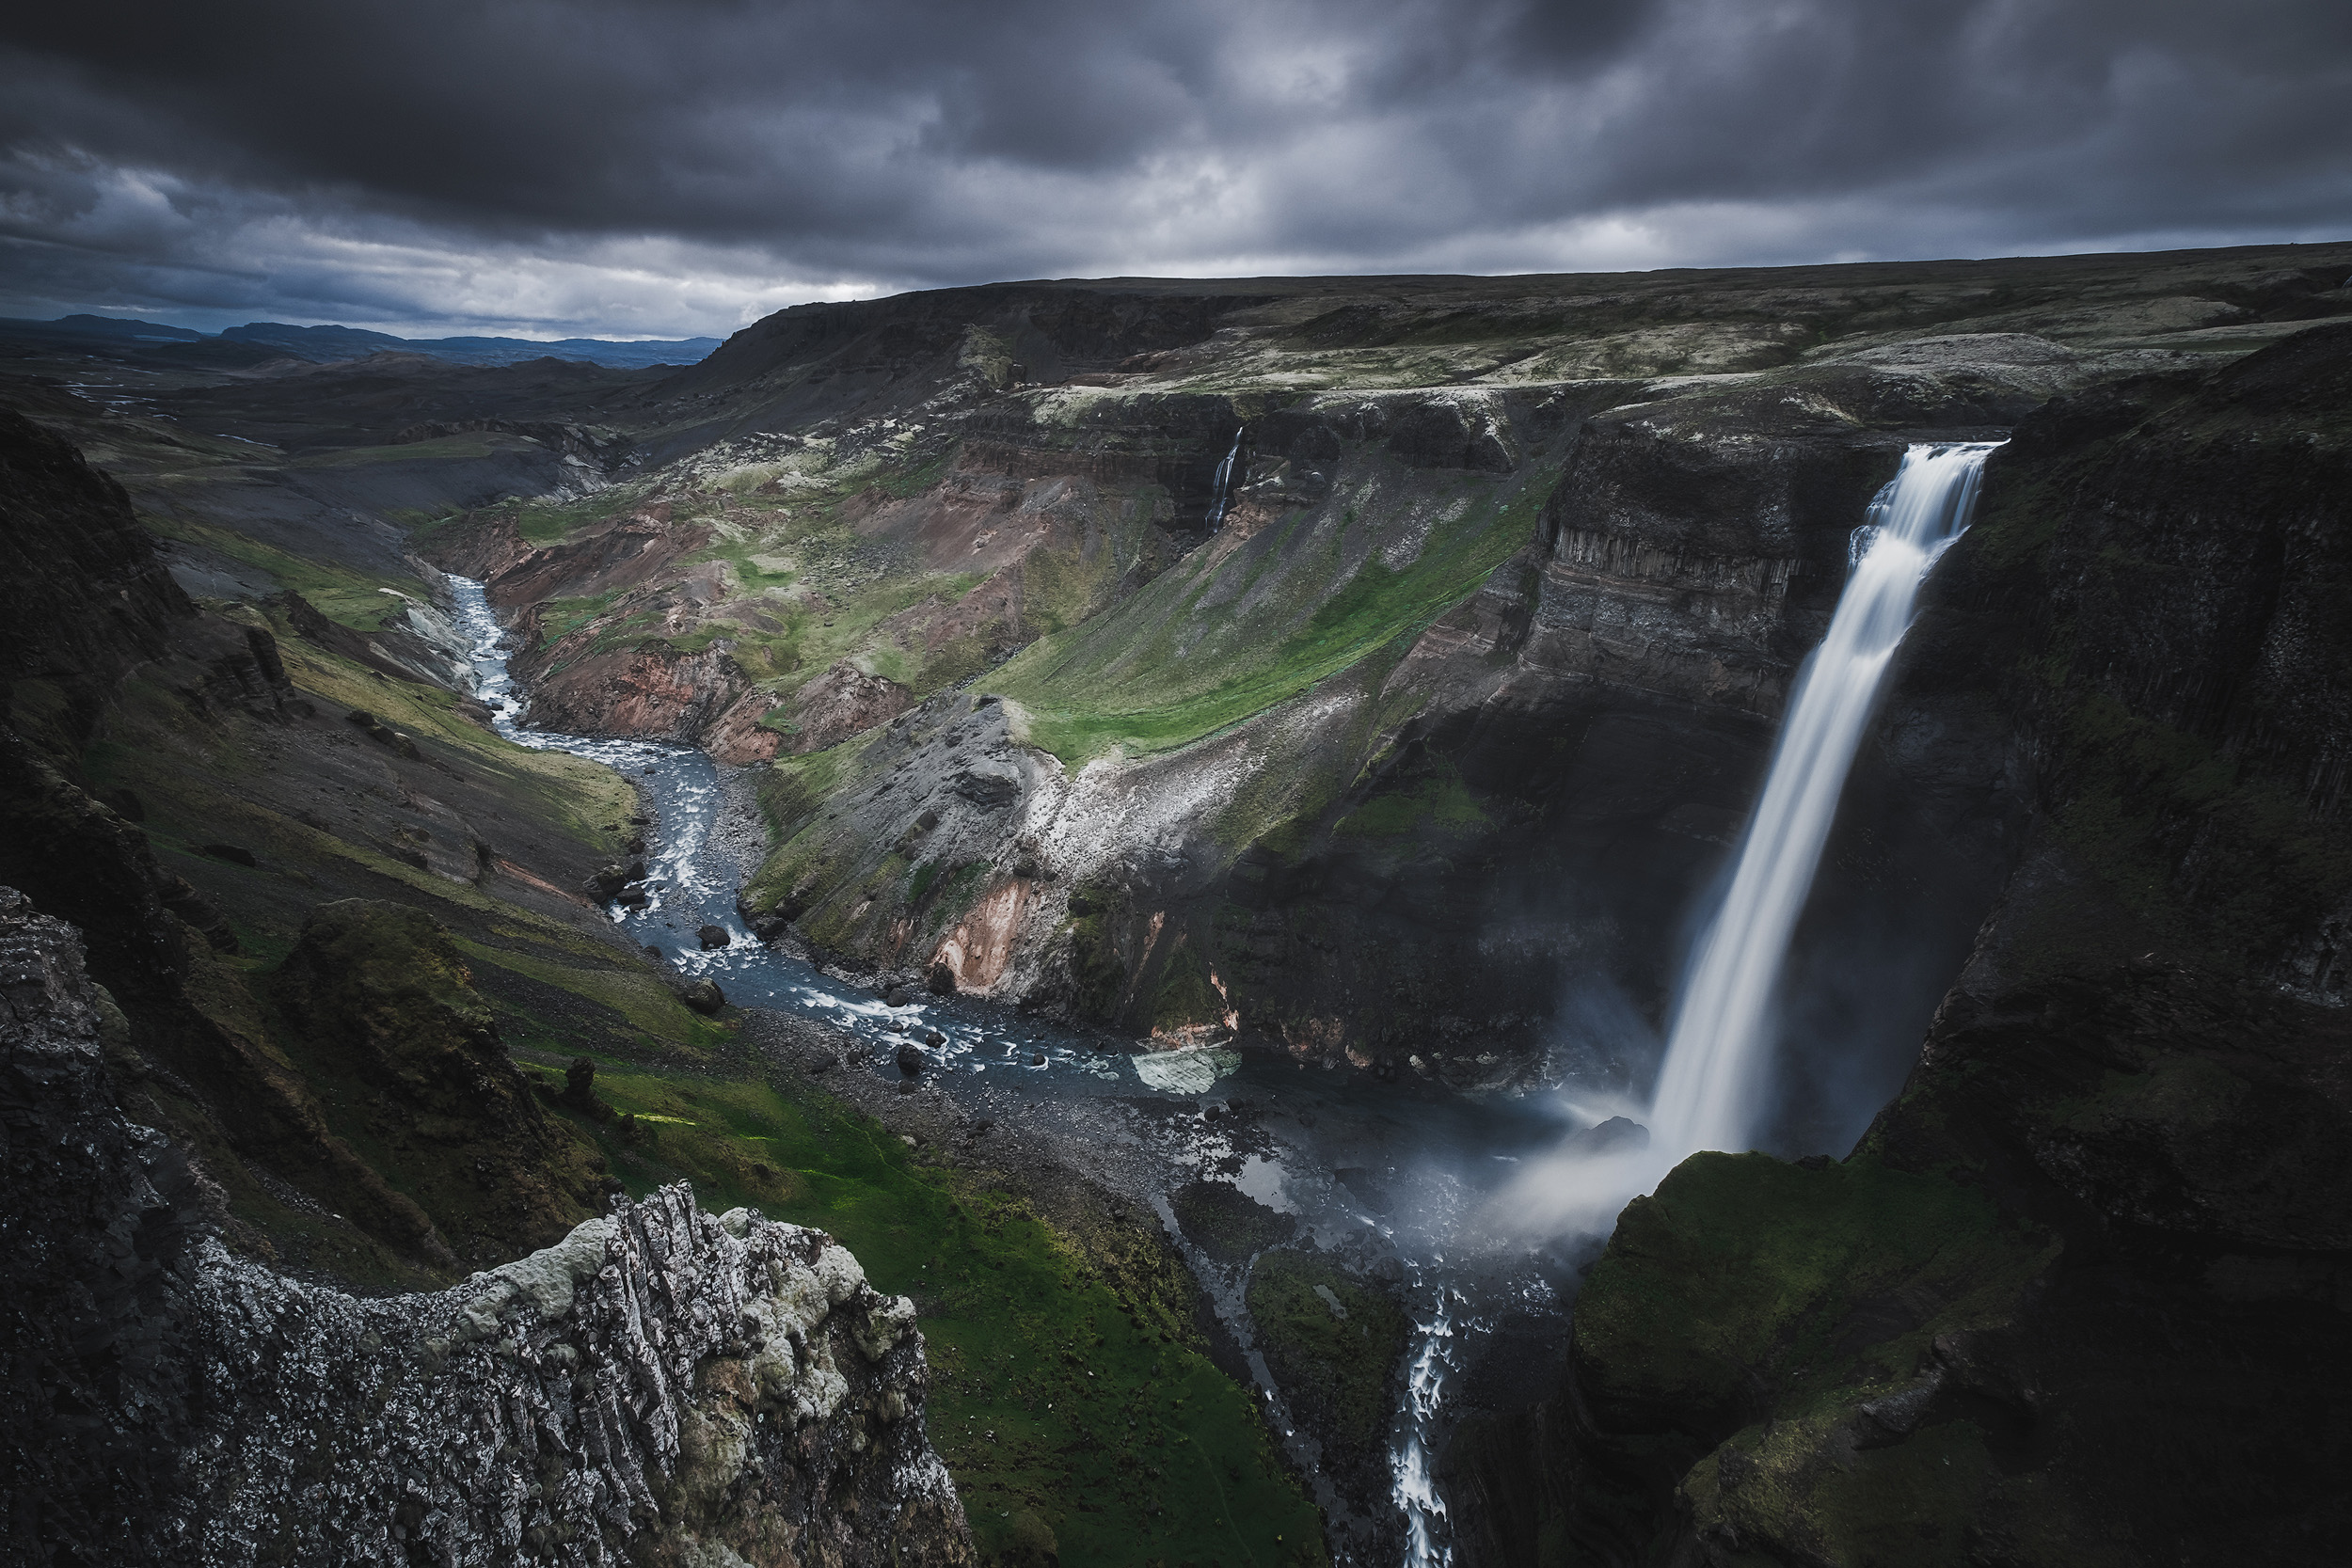 Haifoss  The falls at Haifoss tumble 150m into the canyon below in Iceland's highlands